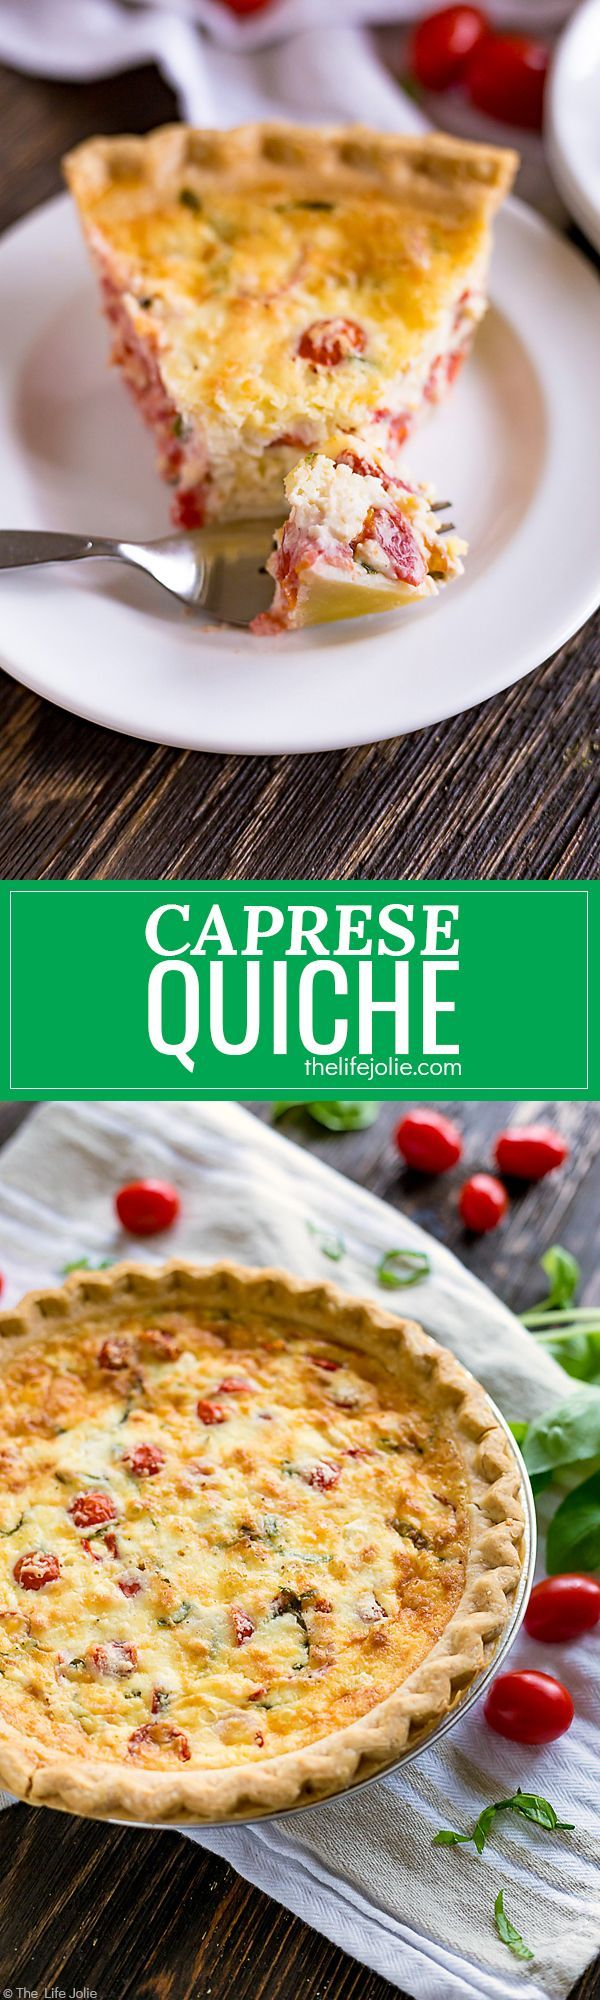 Caprese Quiche is an easy breakfast or brunch recipe. This is simple, feel-good food at it's finest with mouthwatering tomatoes, mozzarella and basil. It's great to make ahead or eat right away and perfect to whip up for Easter, Mother's Day or Christmas